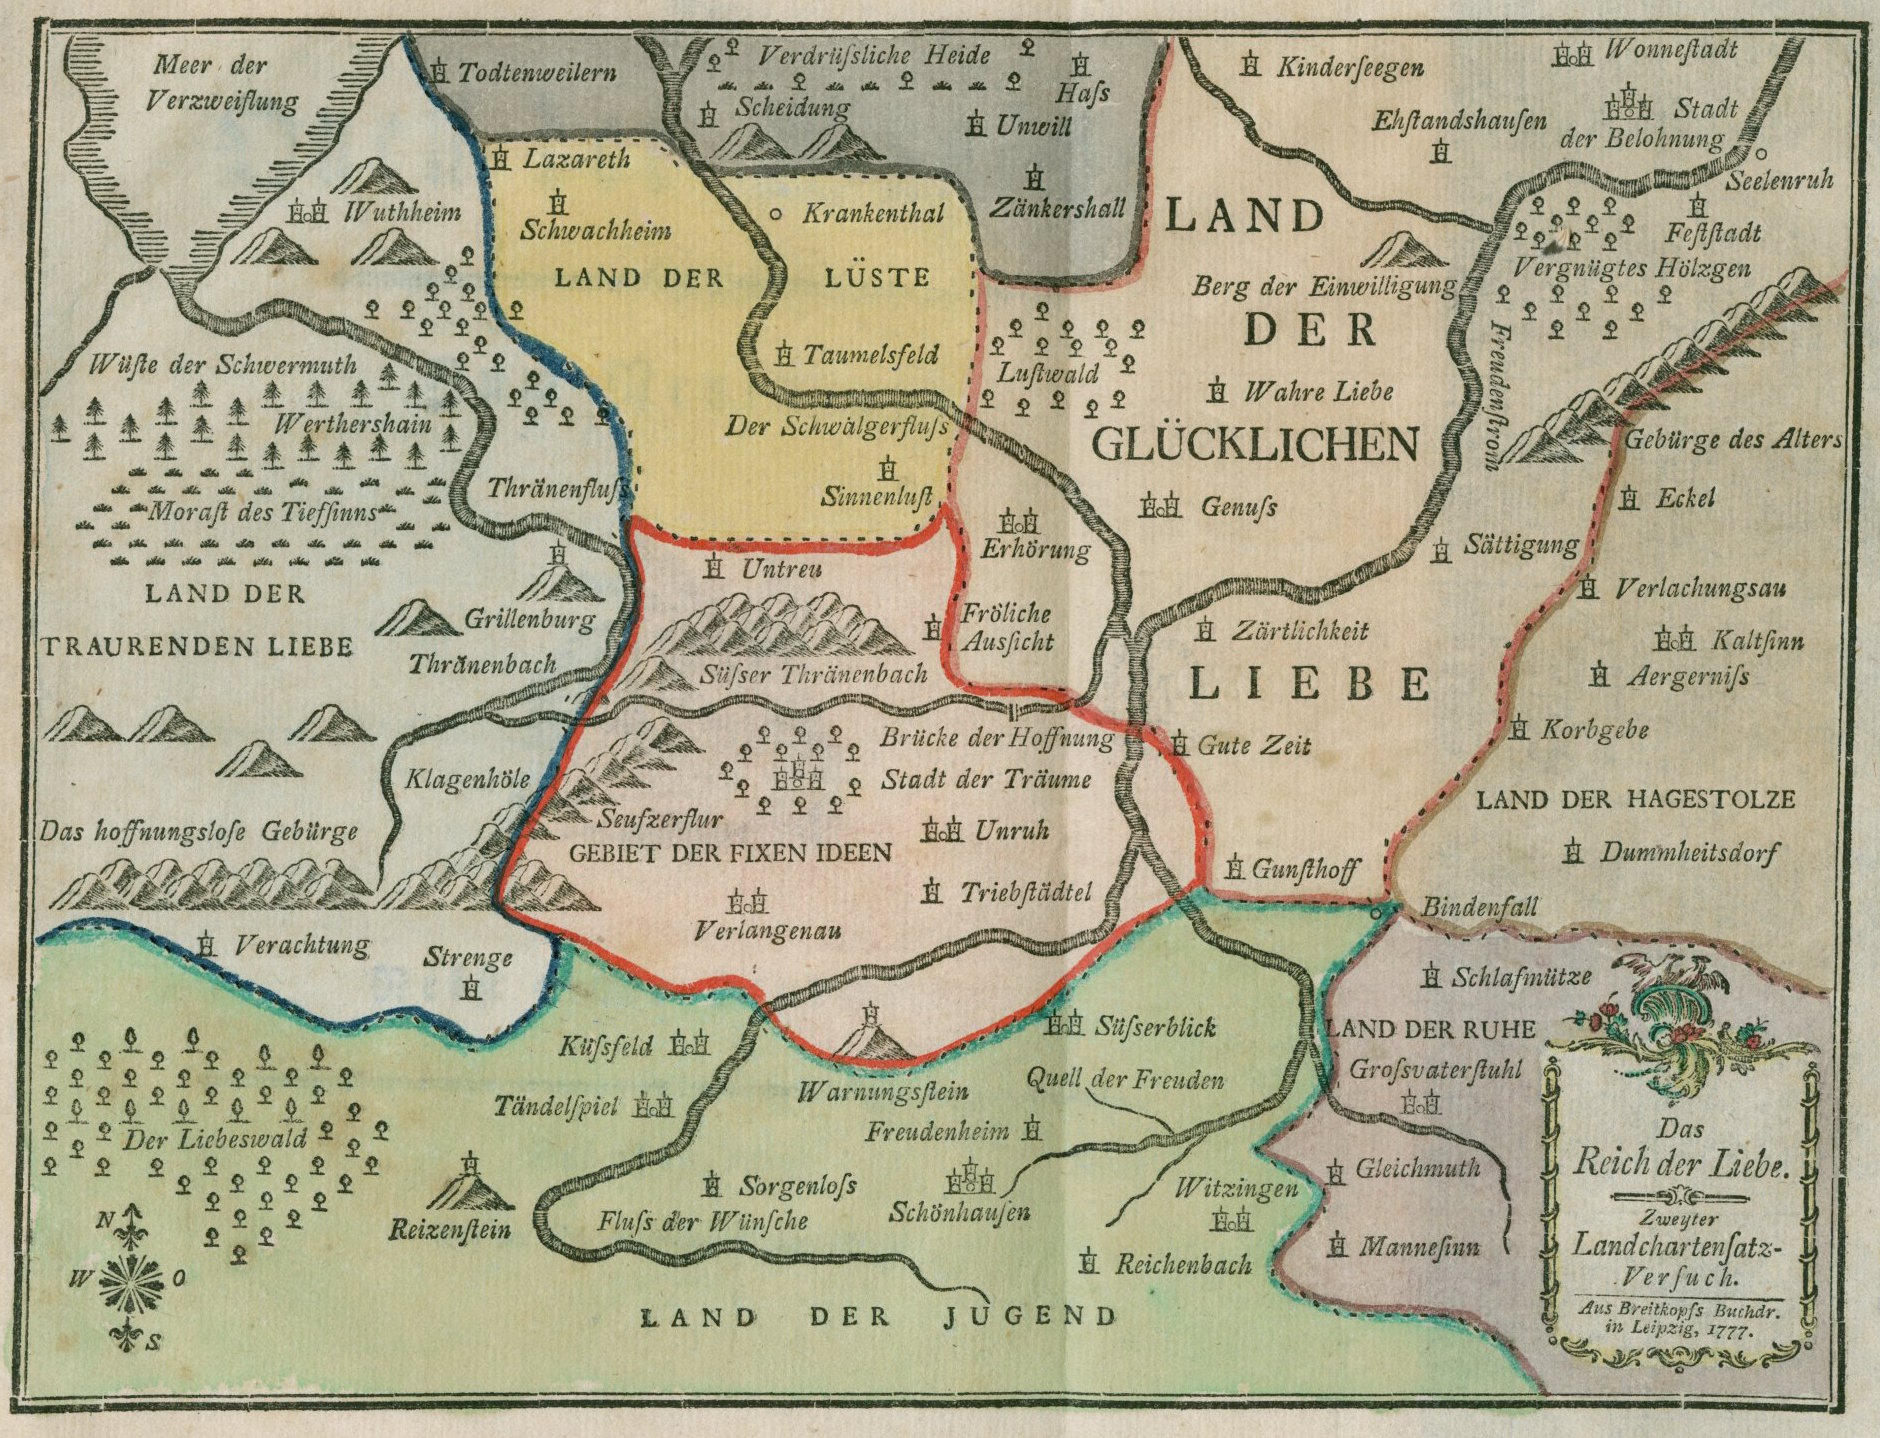 below the map is a listing of the place names in german and an attempt at english translation